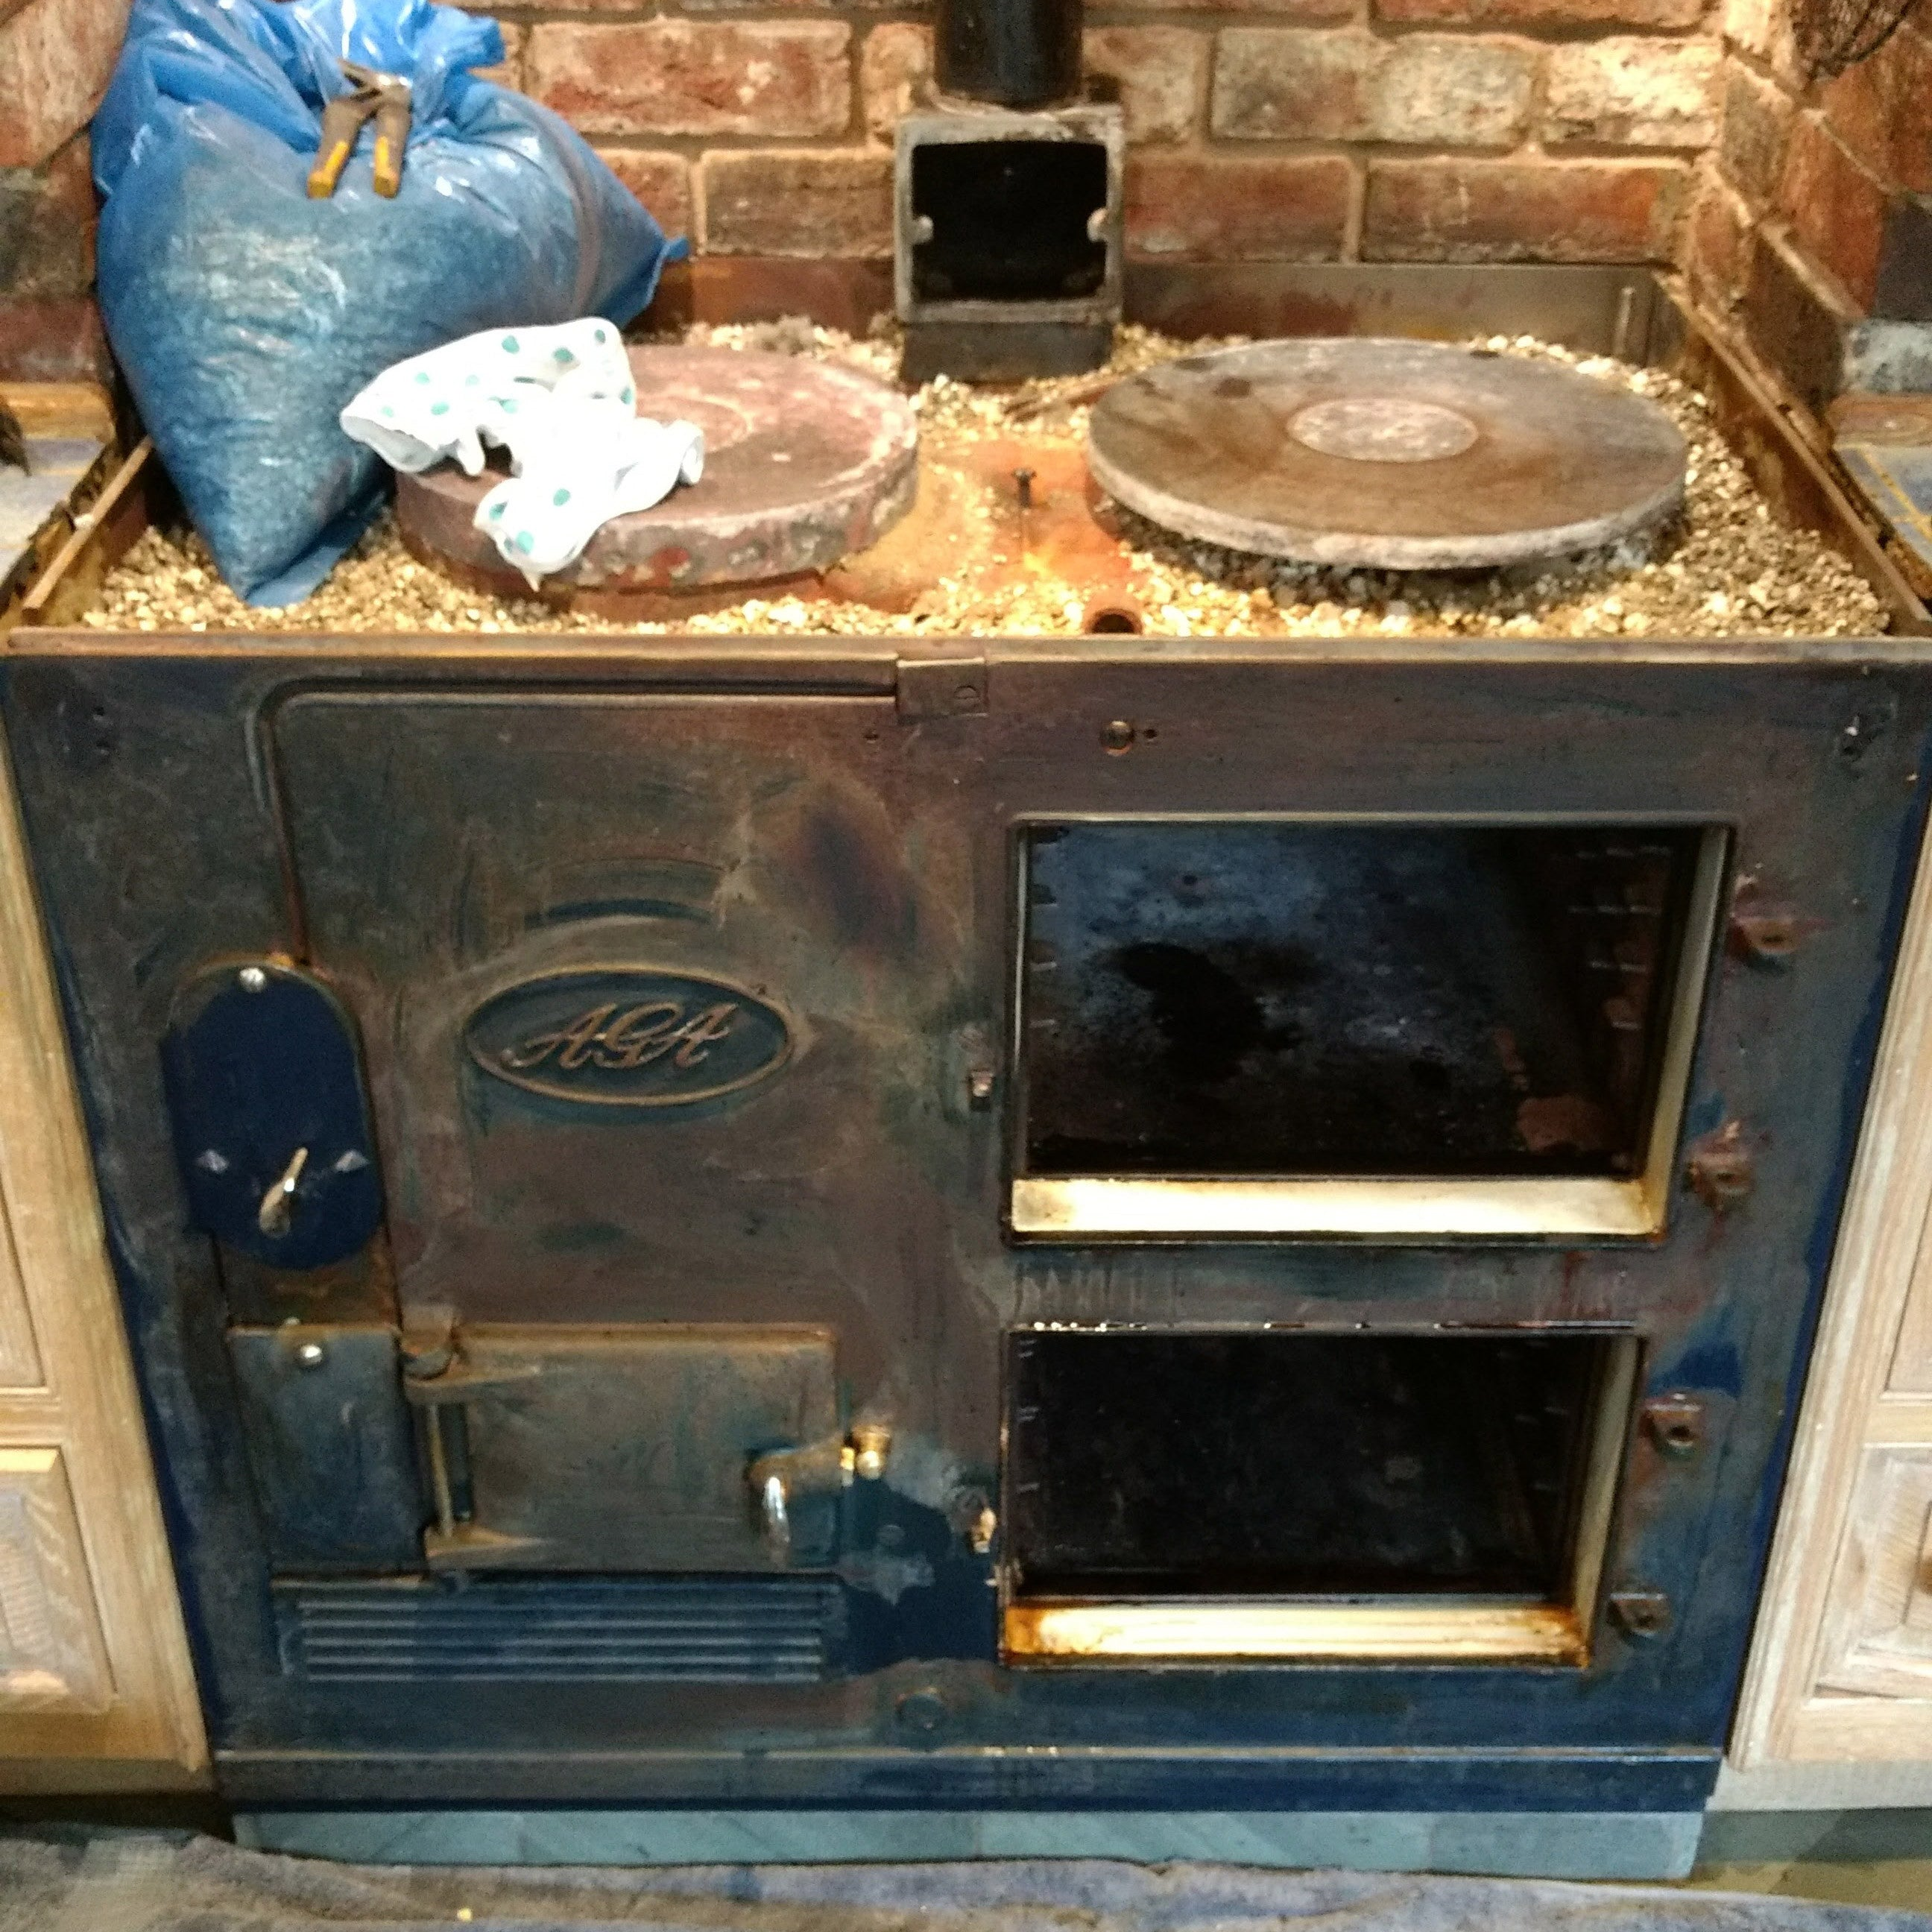 Resurfaced Aga front lid hob off